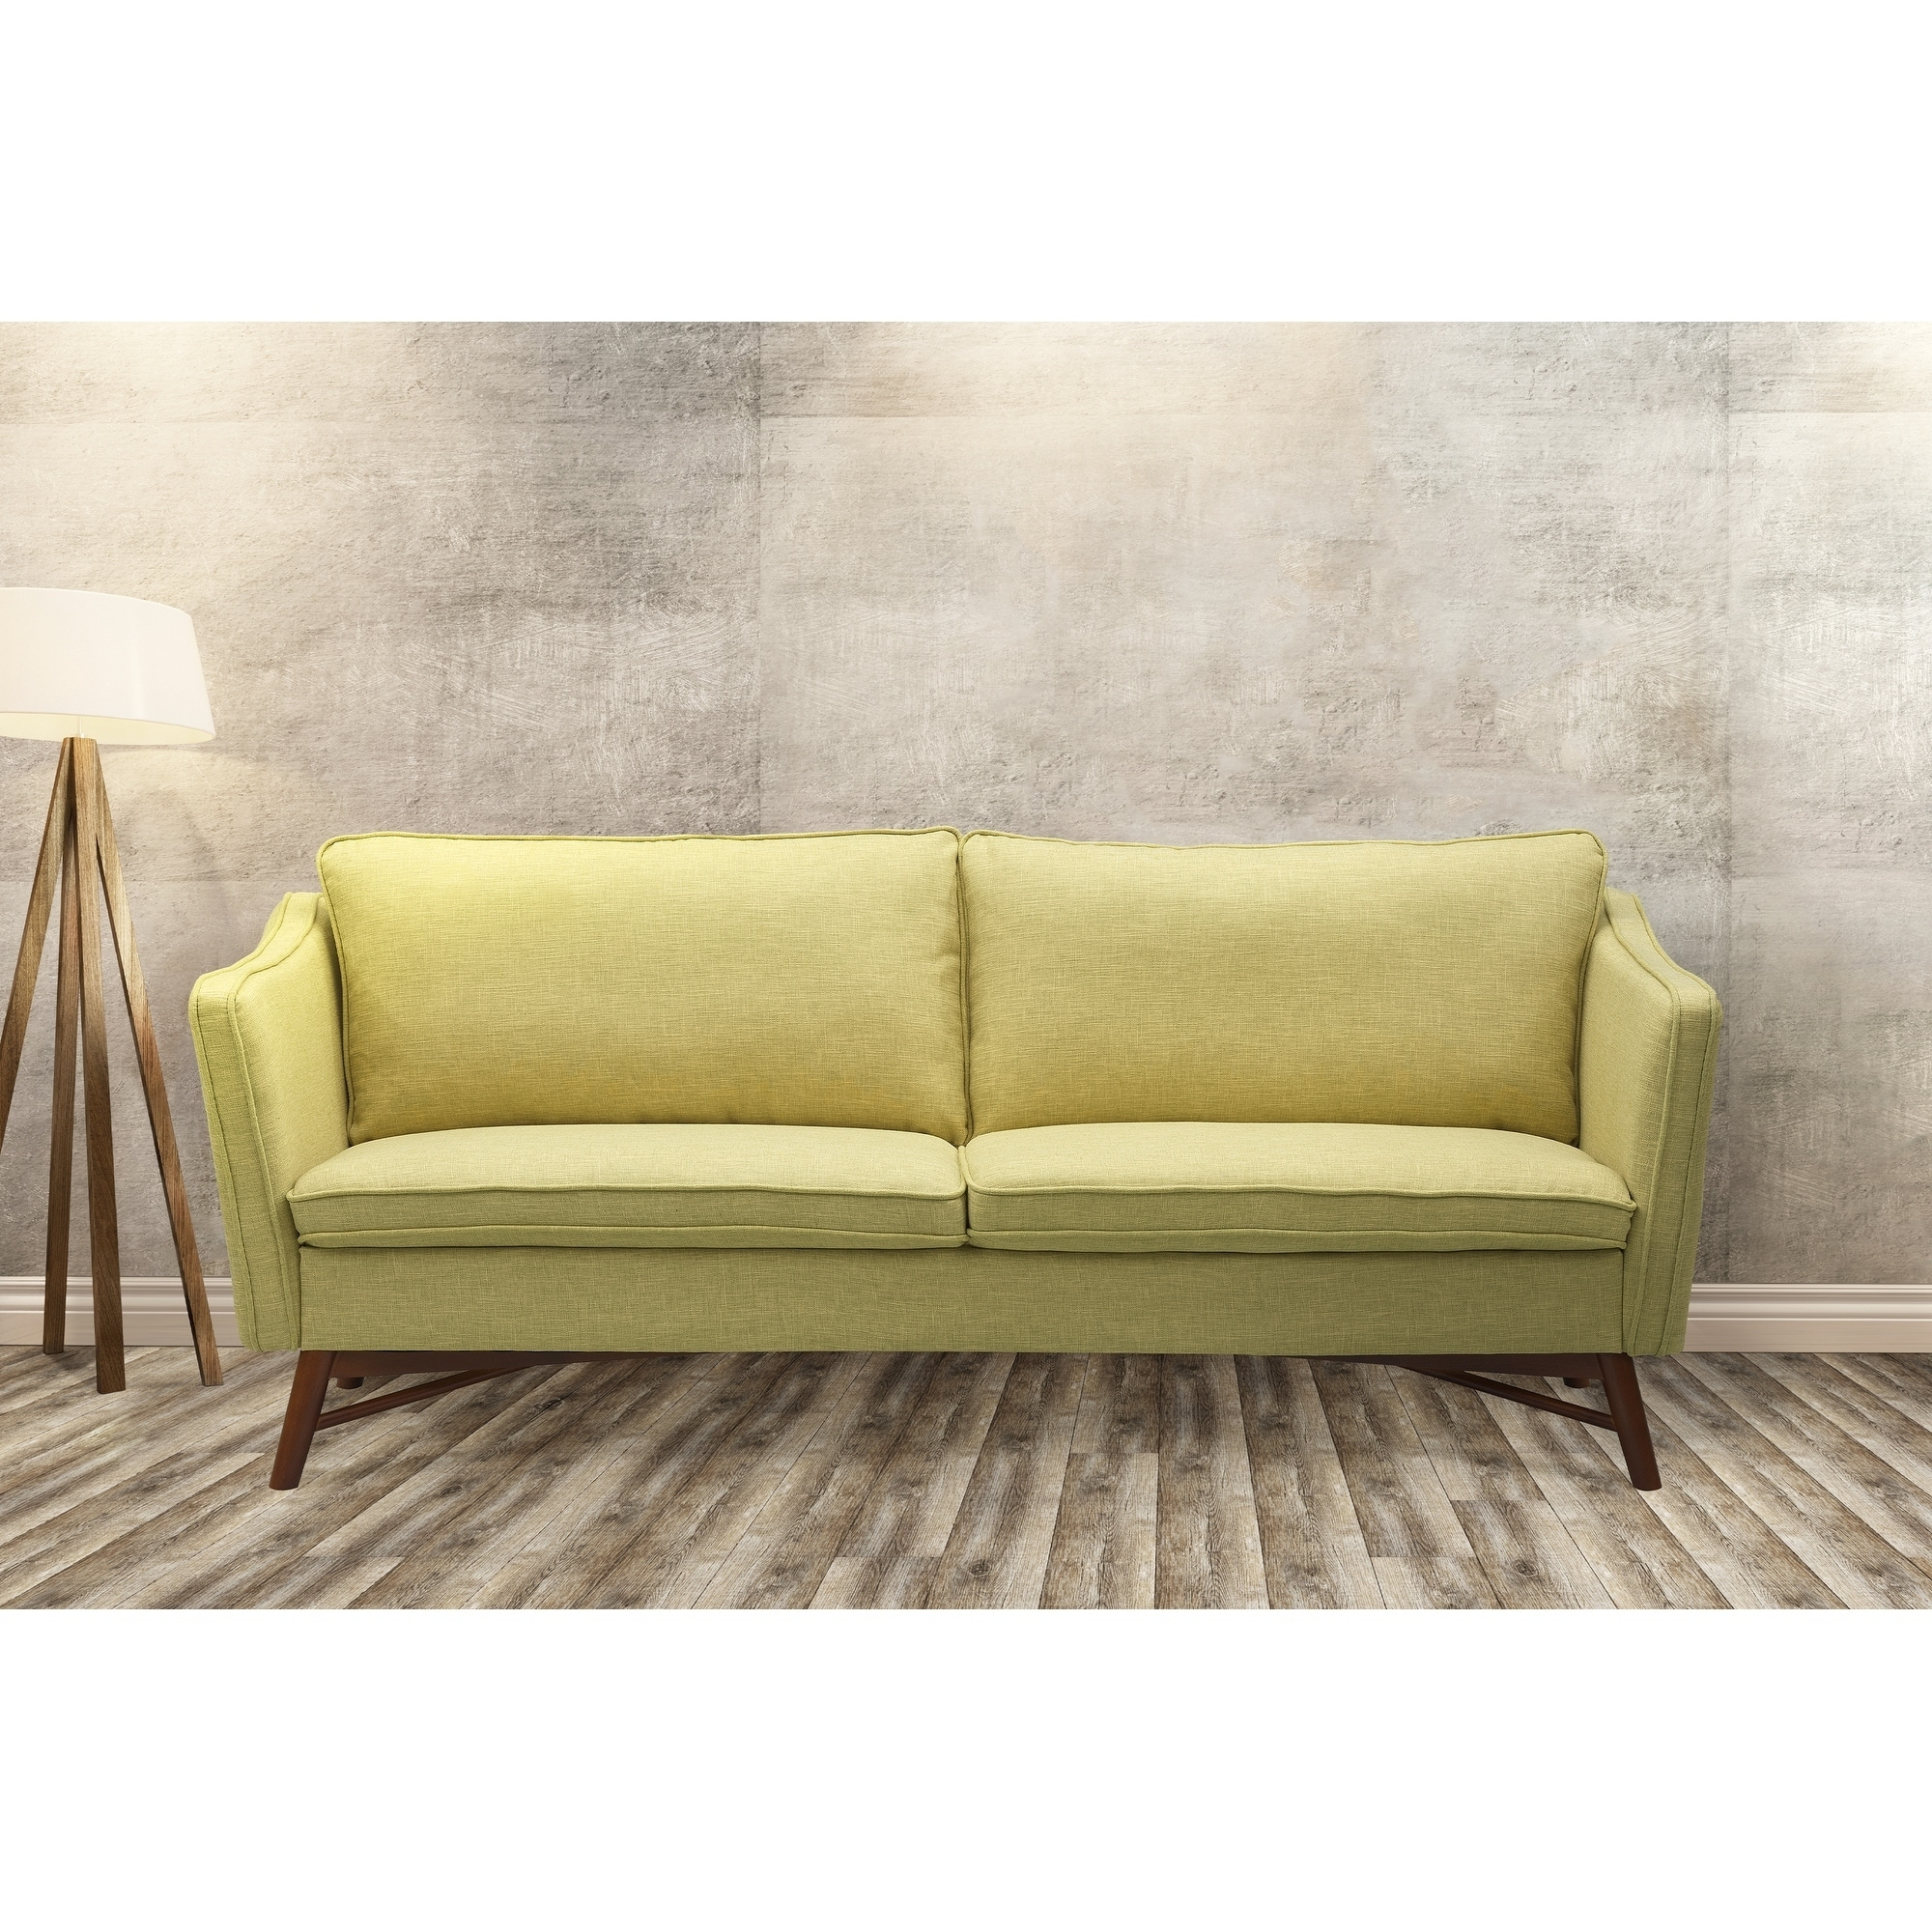 Excellent Cabriole Mid Century Sofa In Walnut Finish With Light Green Fabric Ncnpc Chair Design For Home Ncnpcorg